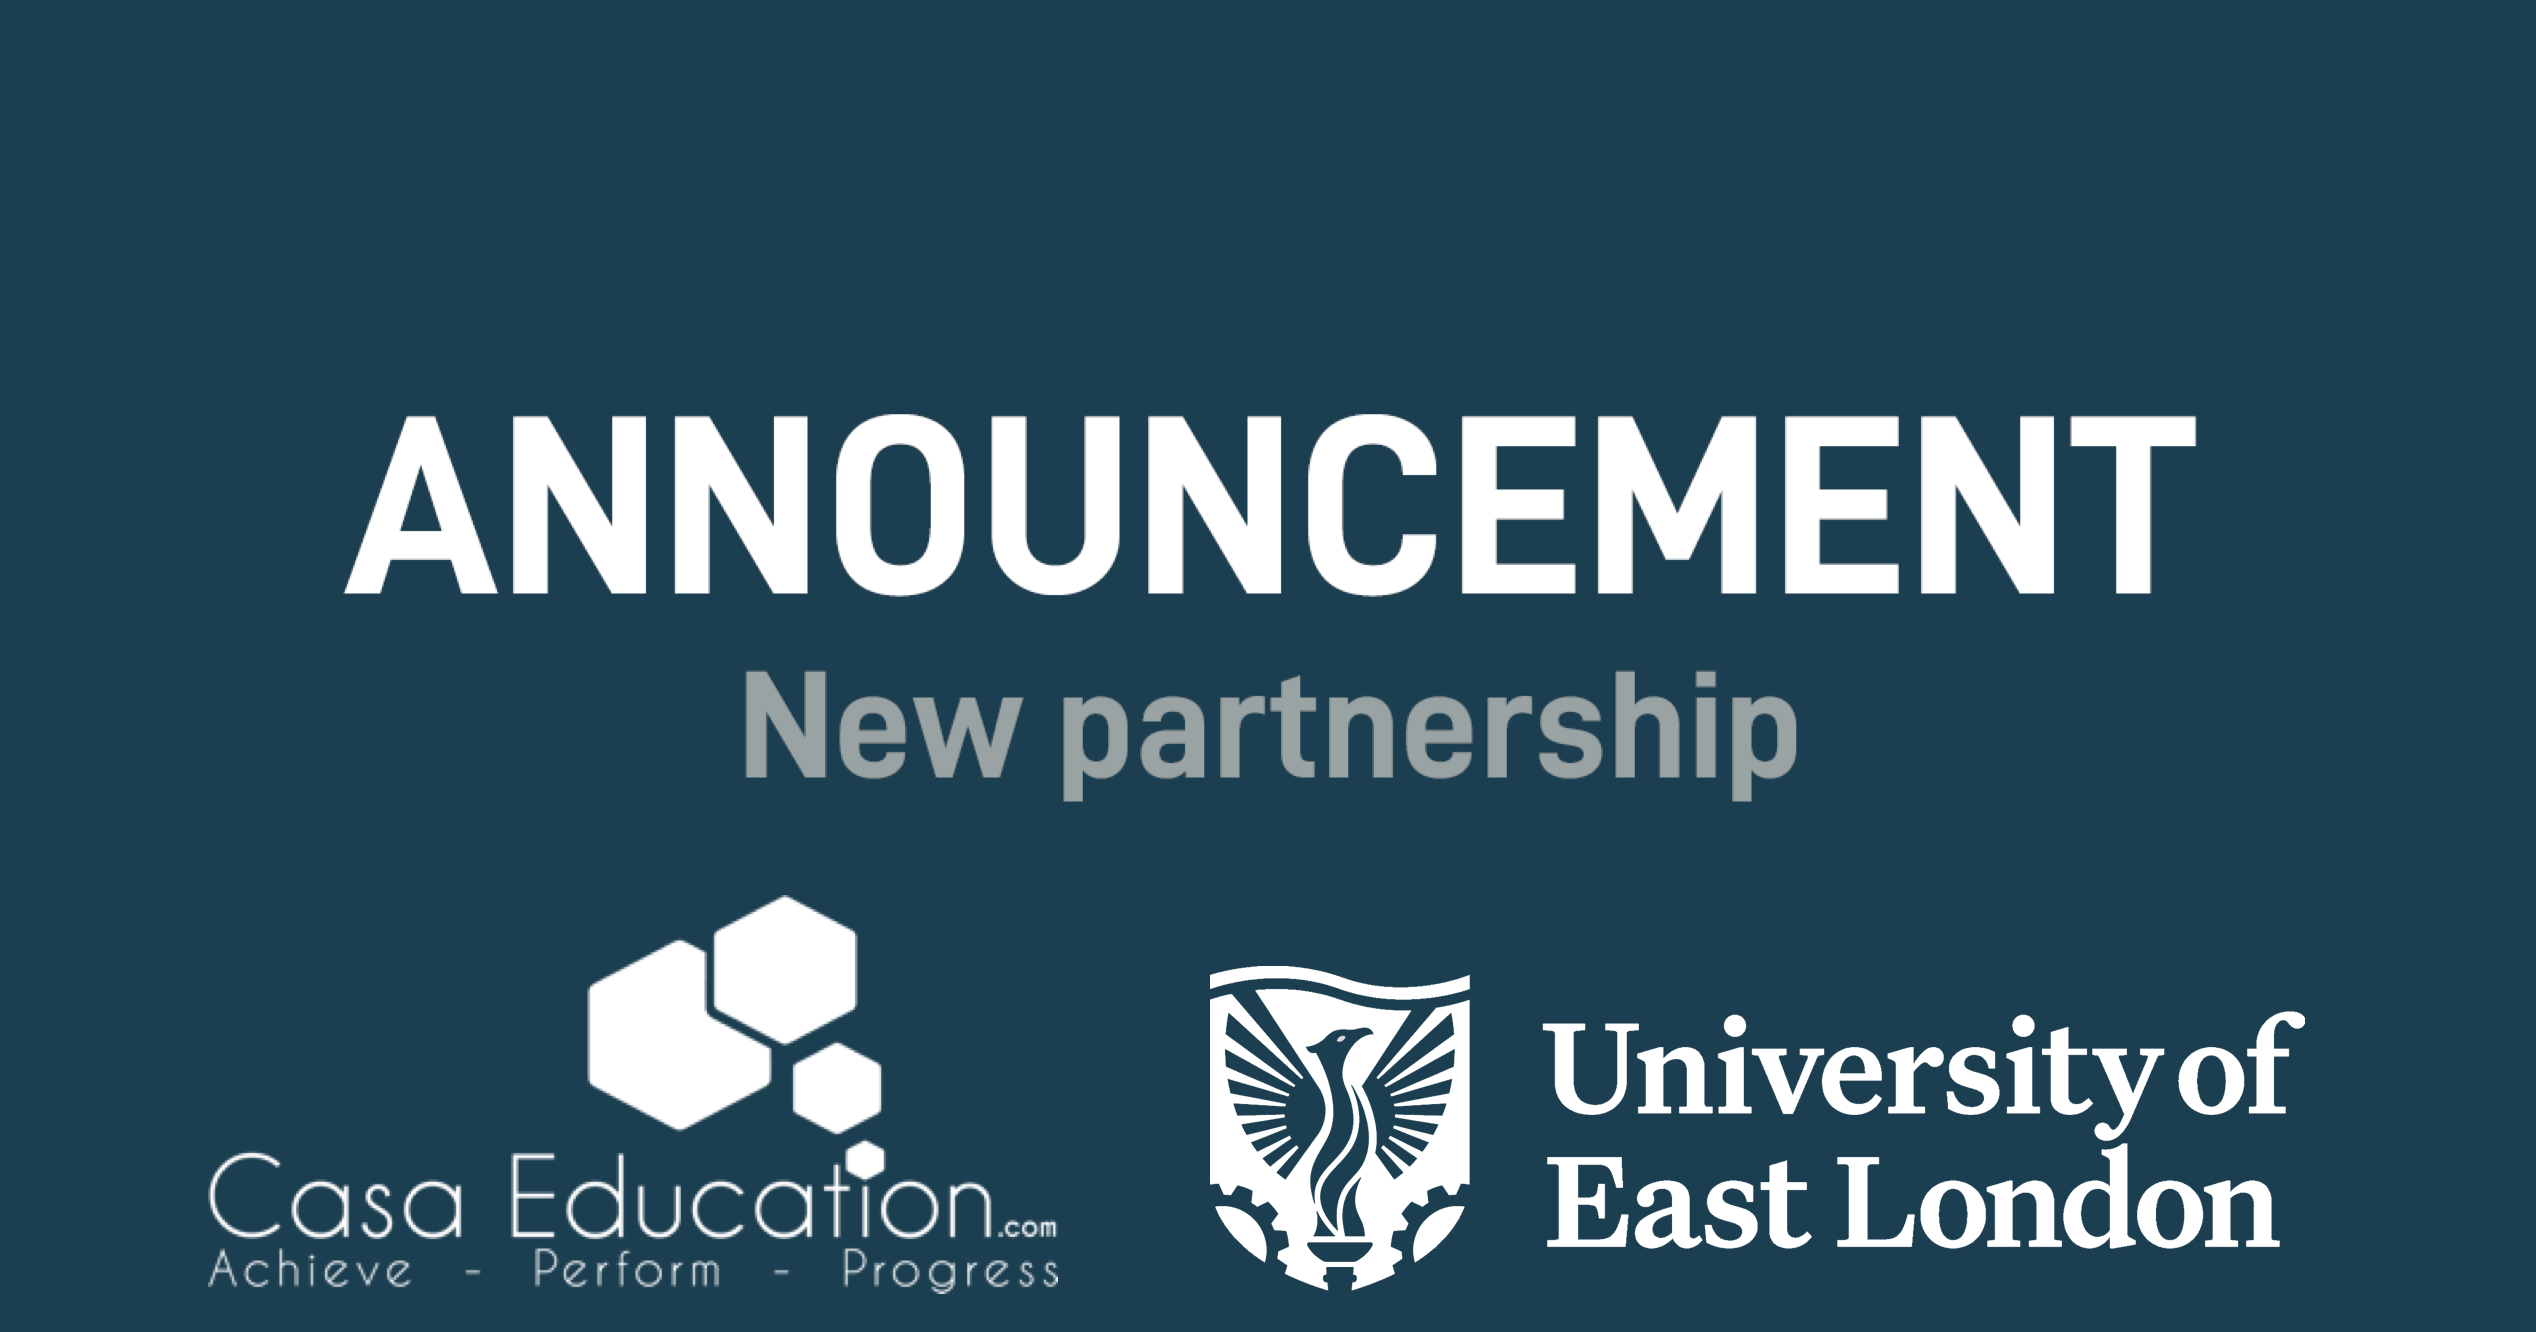 Partnership CasaEducation UEL